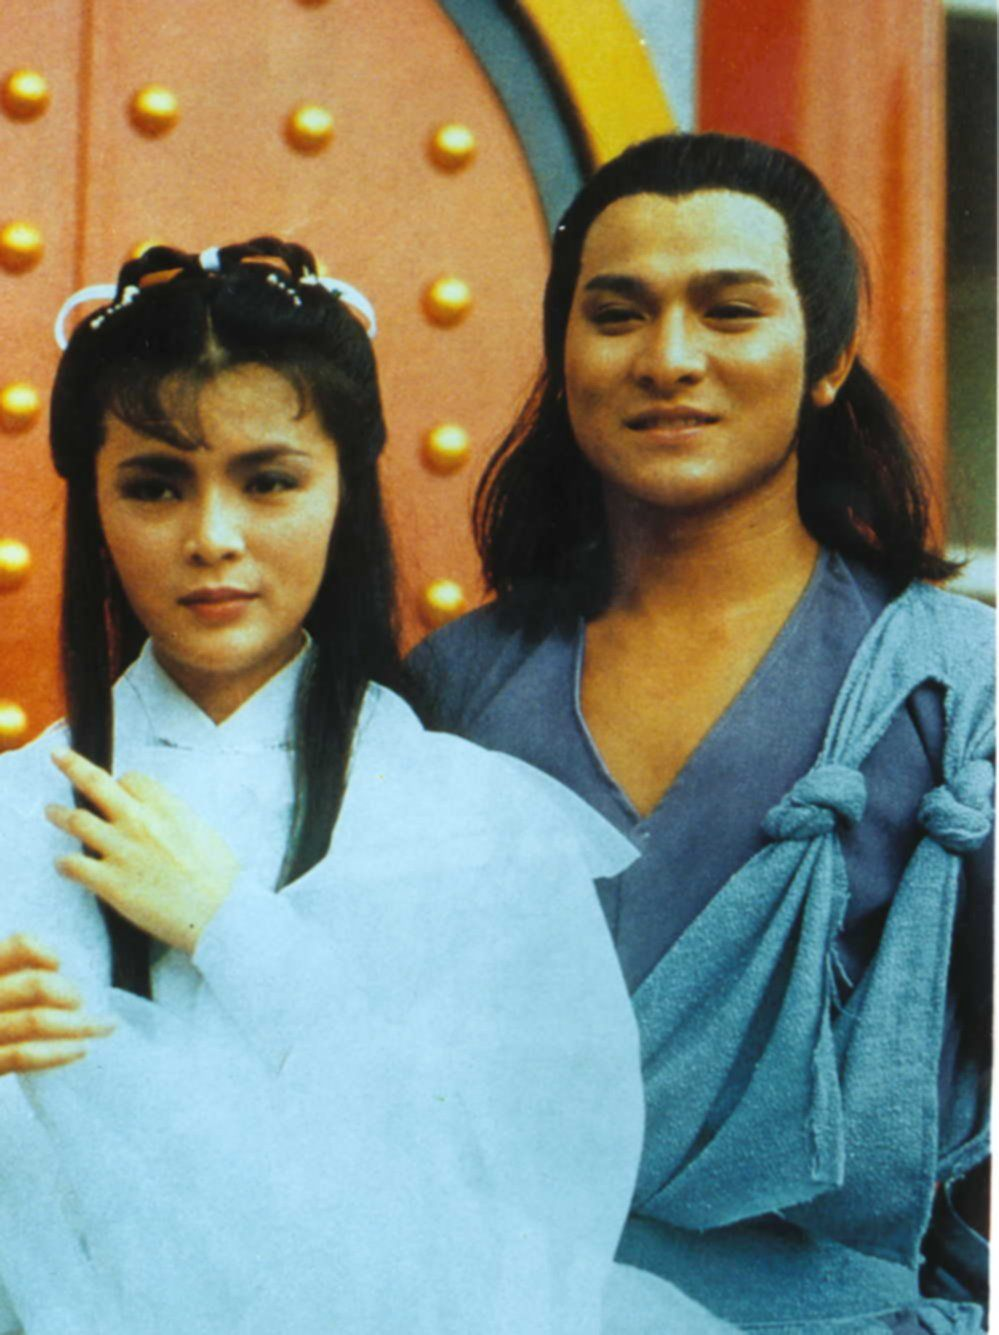 20+ Andy Lau And Idy Chan Pictures and Ideas on Meta Networks